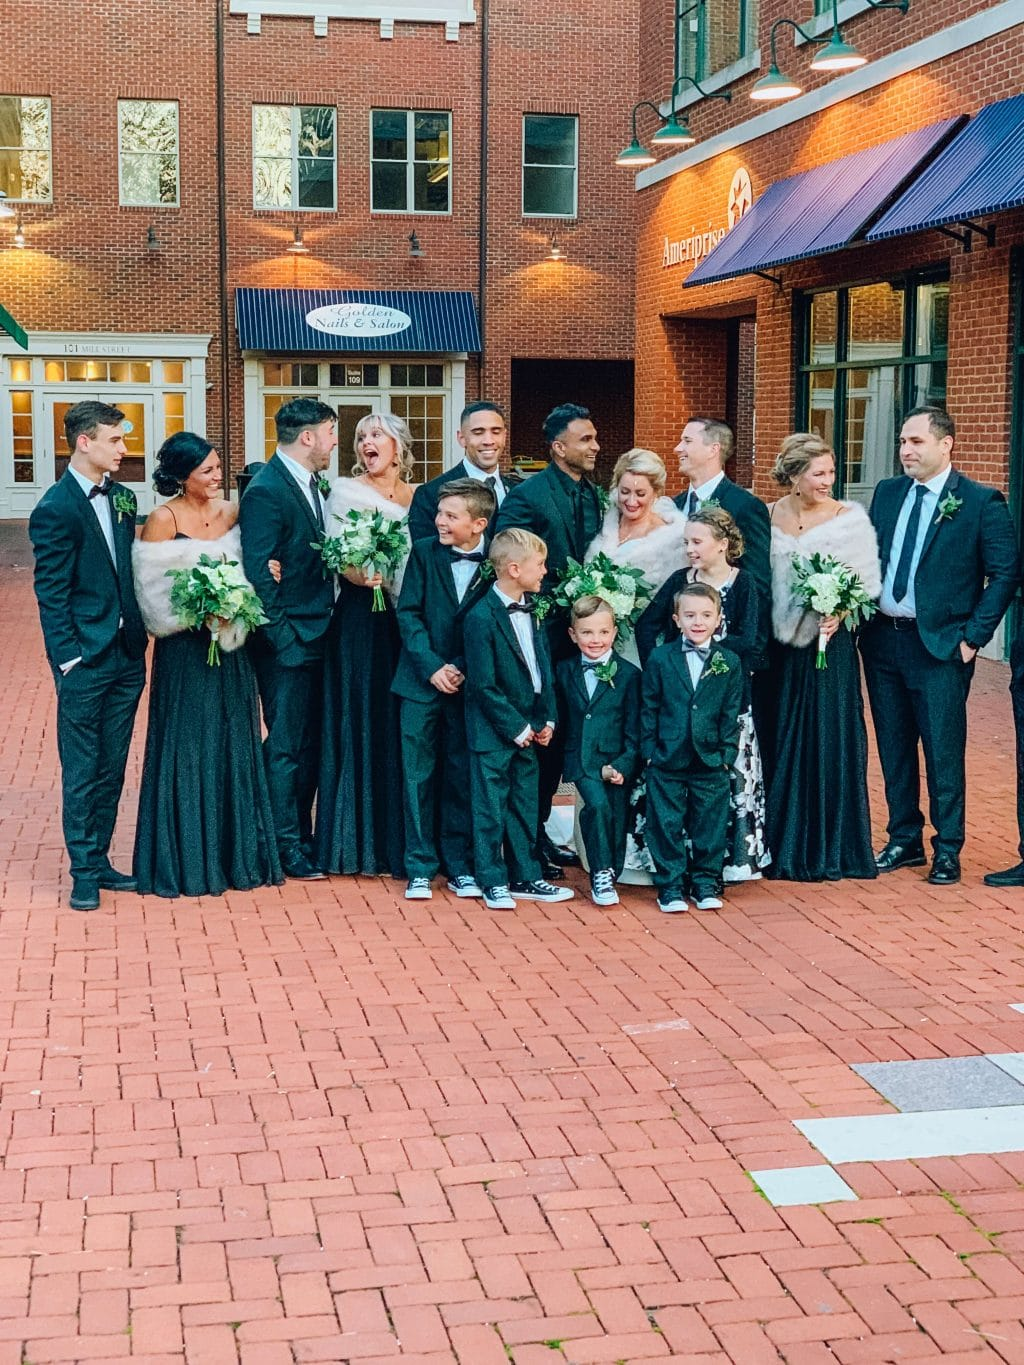 Ohio winter wedding, fur shawls, black Kleinfeld bridal party dresses, Gahanna,